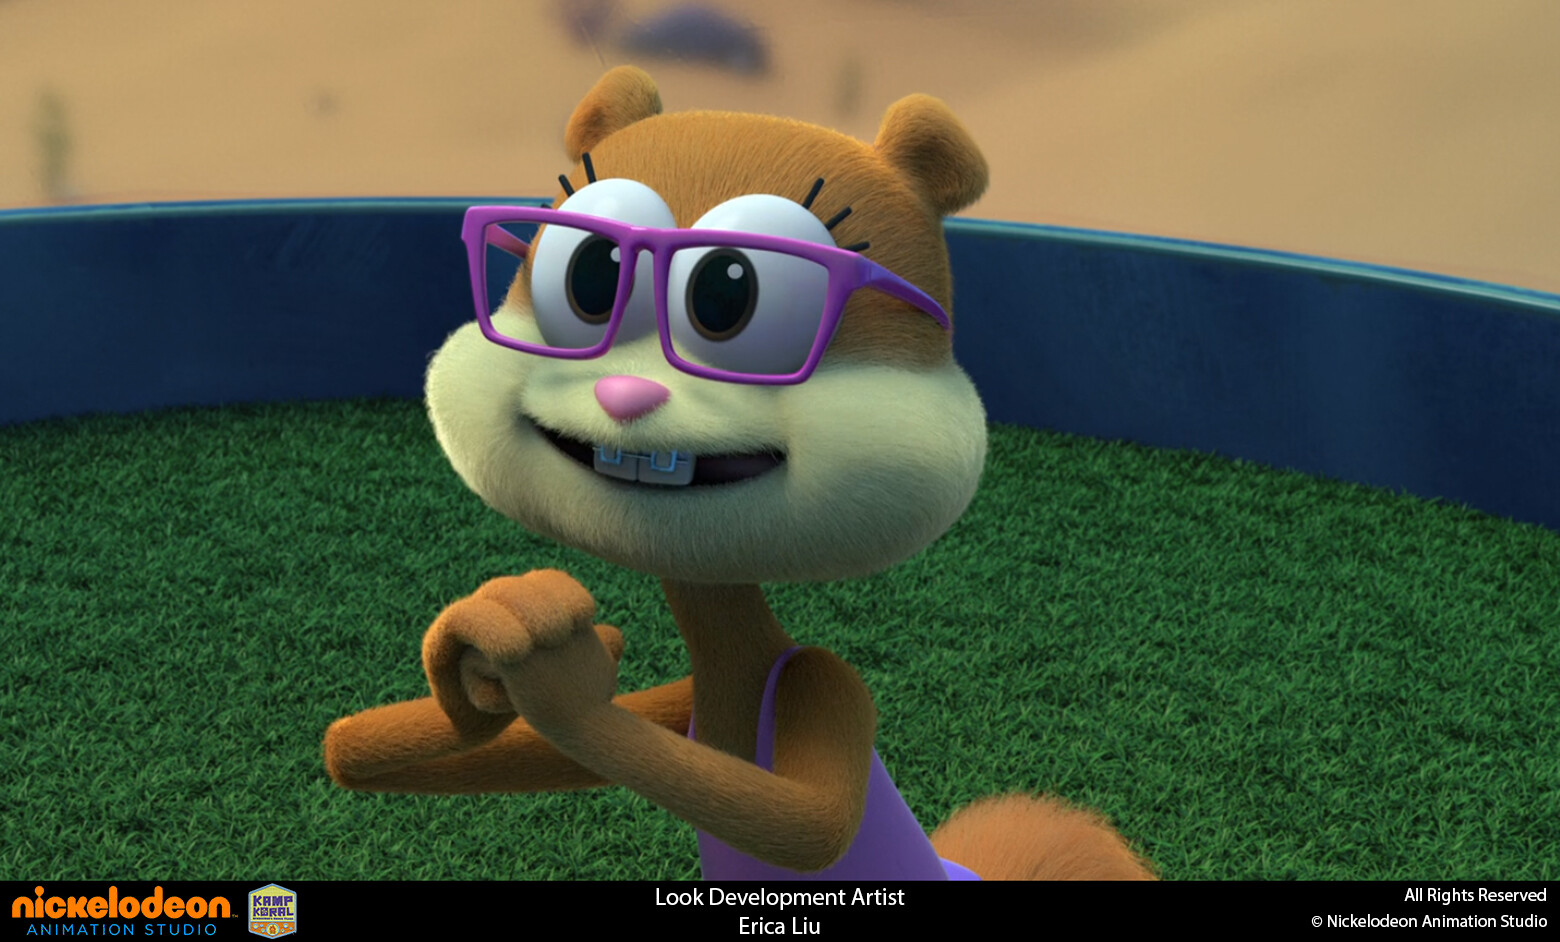 Responsible for bathing suit texture and groom for Sandy Swimsuit variant based off original Sandy's suit groom